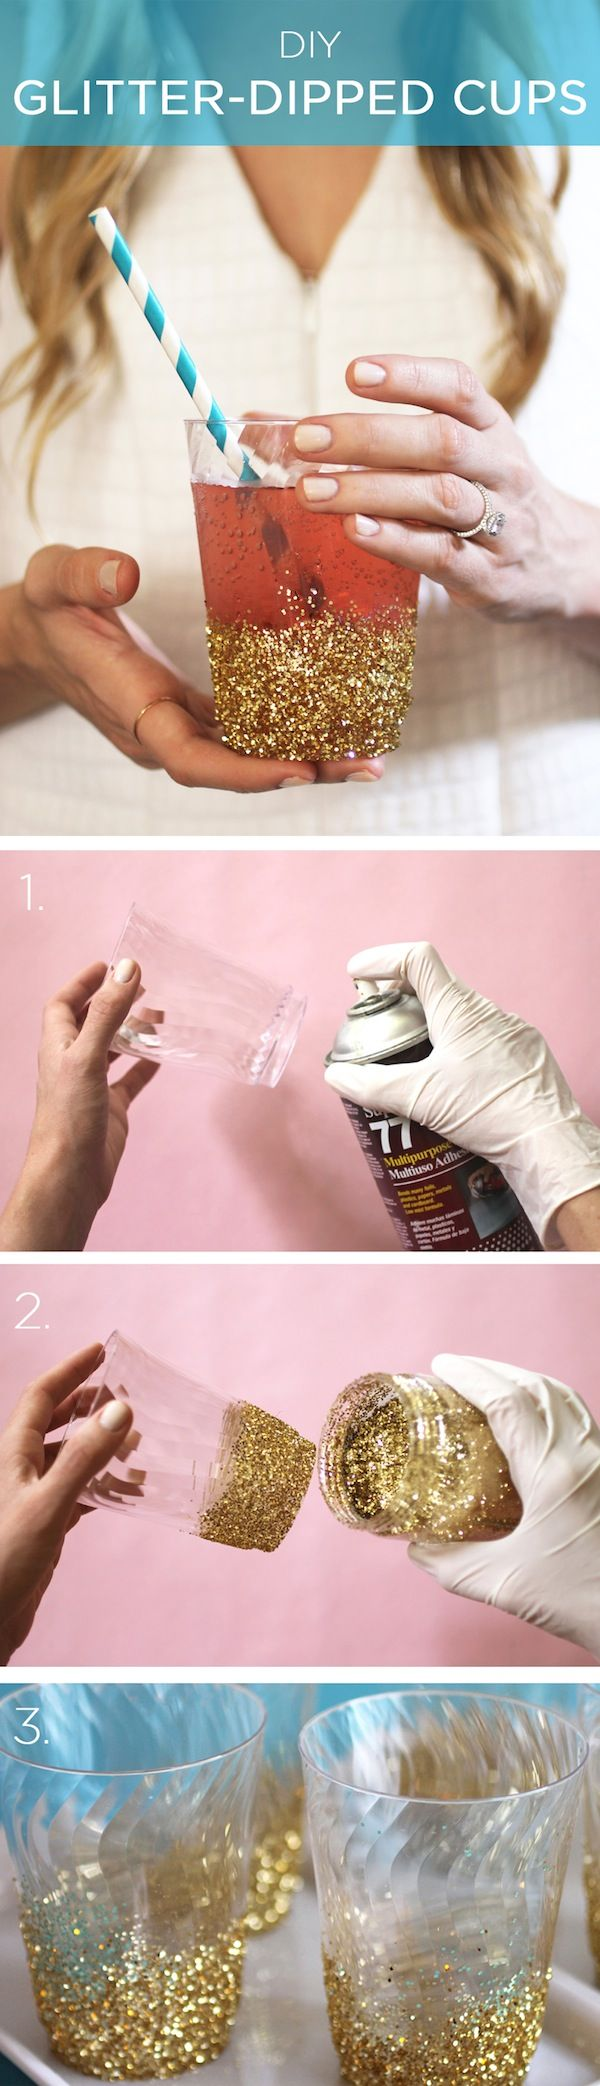 Add some glam to your drink wear with our #DIY Glitter-Dipped Cups for Parties